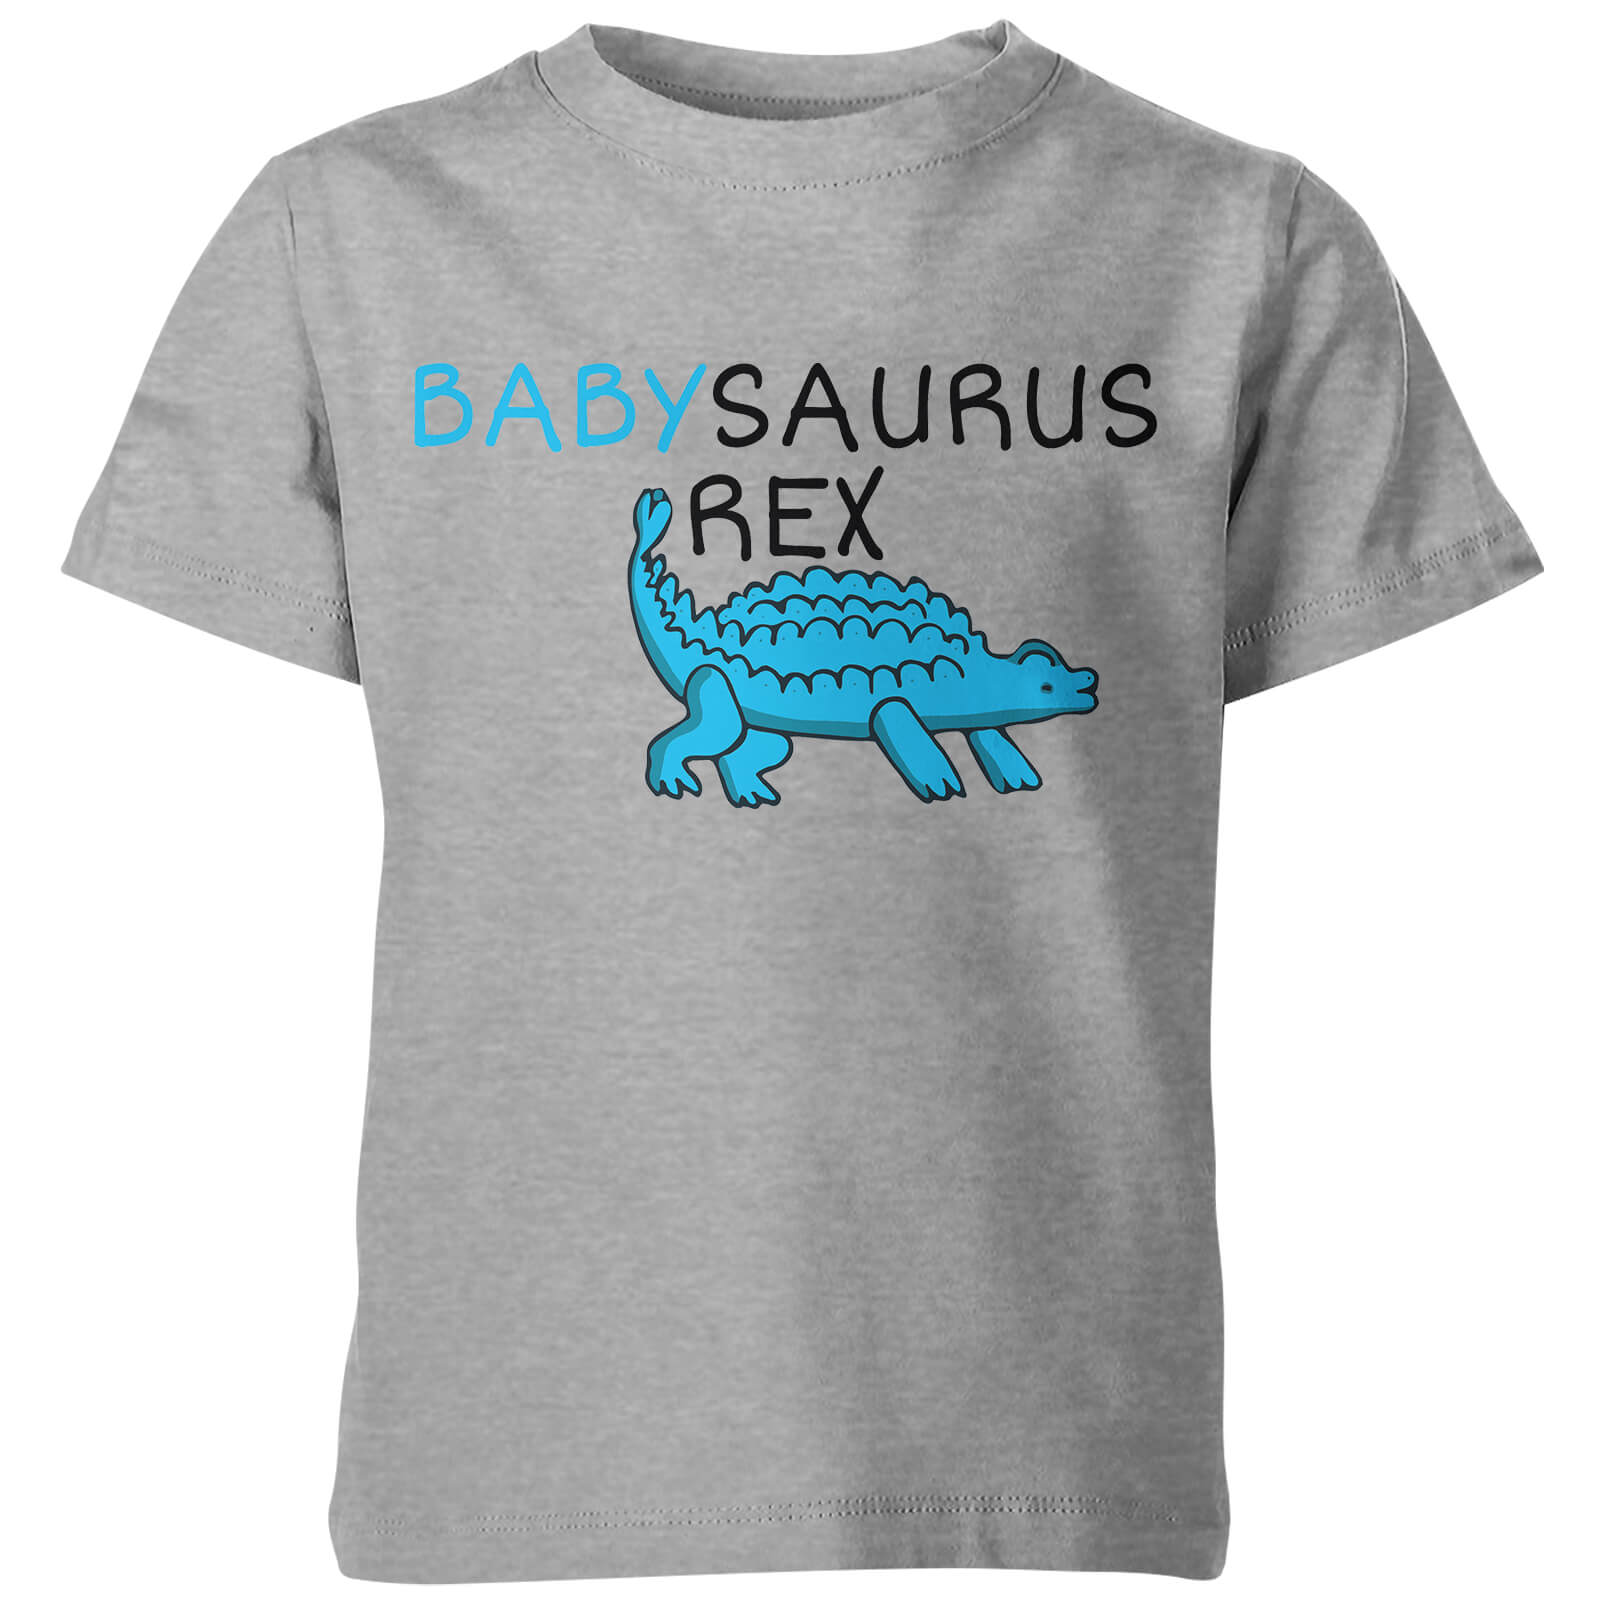 My Little Rascal Kids Babysaurus Rex Grey T-Shirt